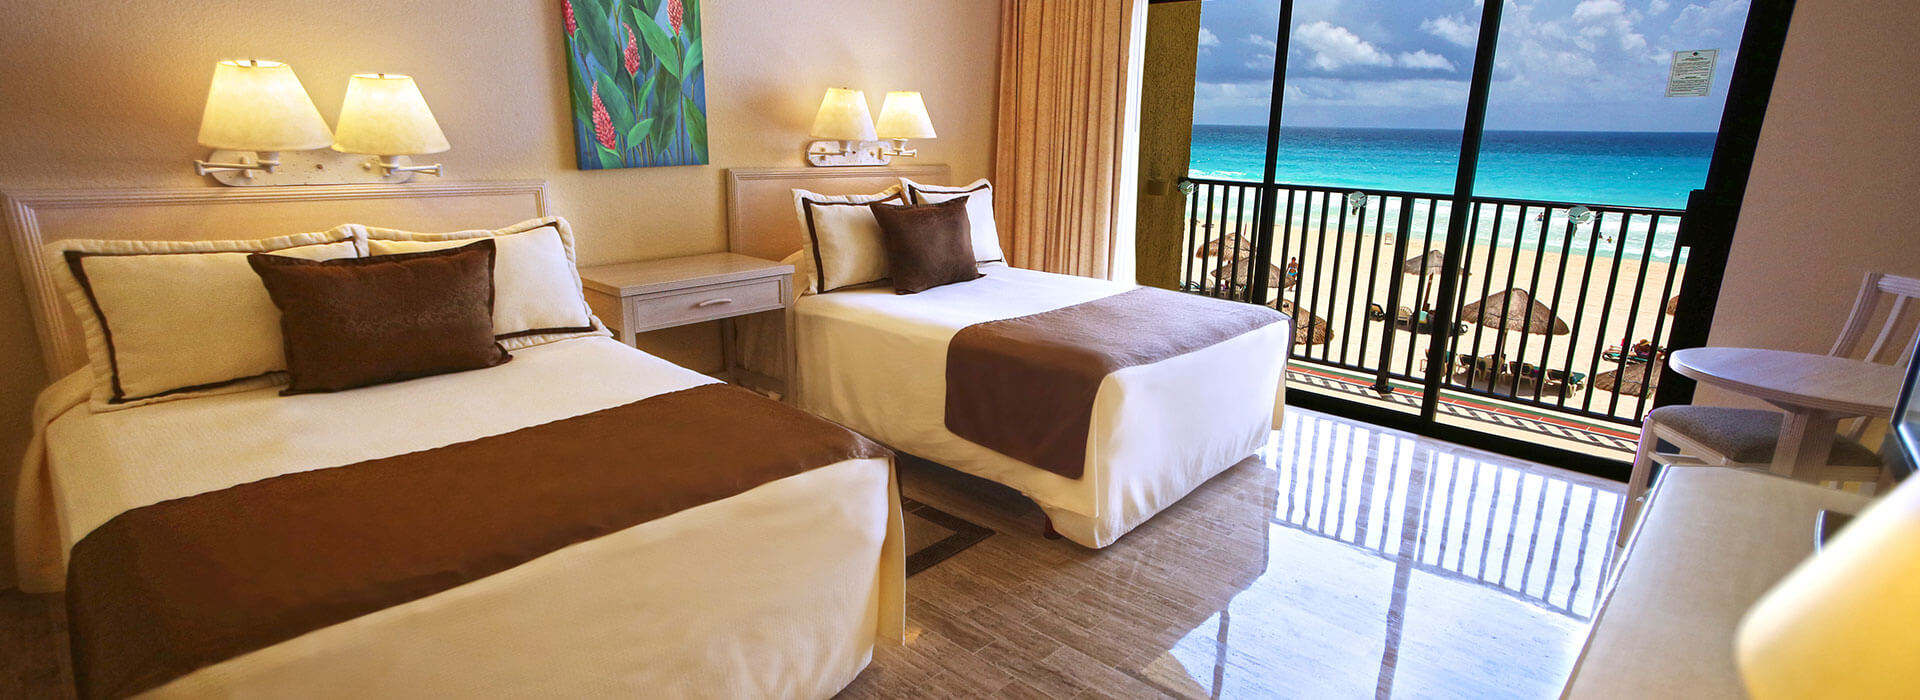 beachfront suite in cancun resort